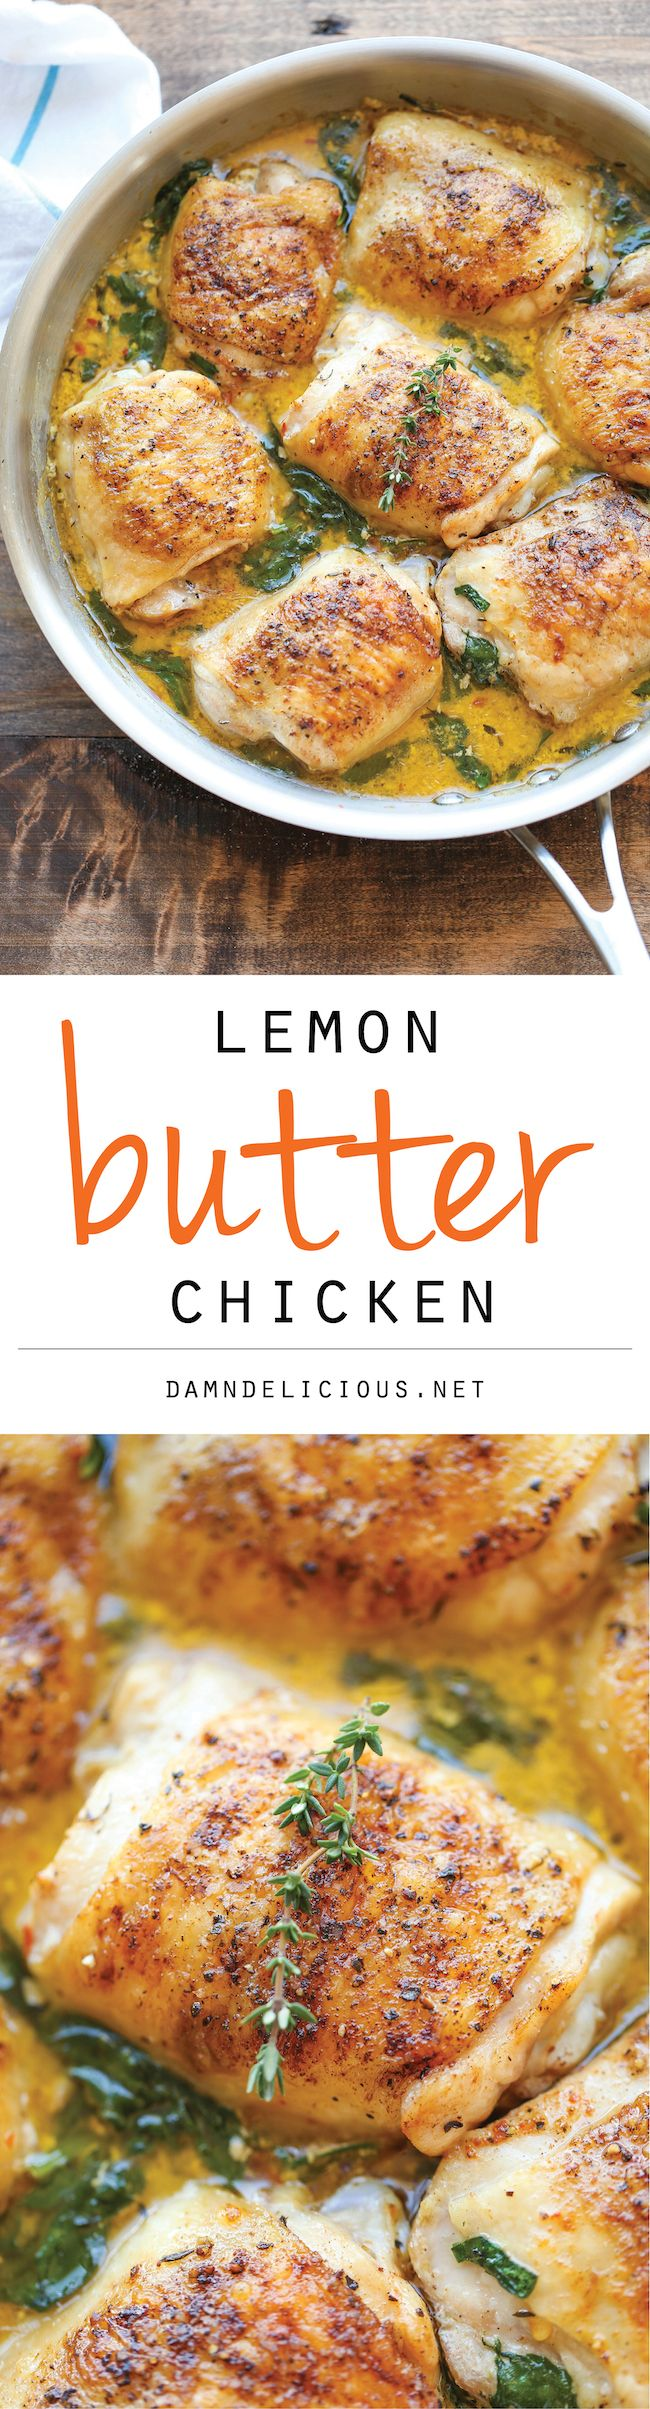 Lemon Butter Chicken - Great chicken recipe for dinner!